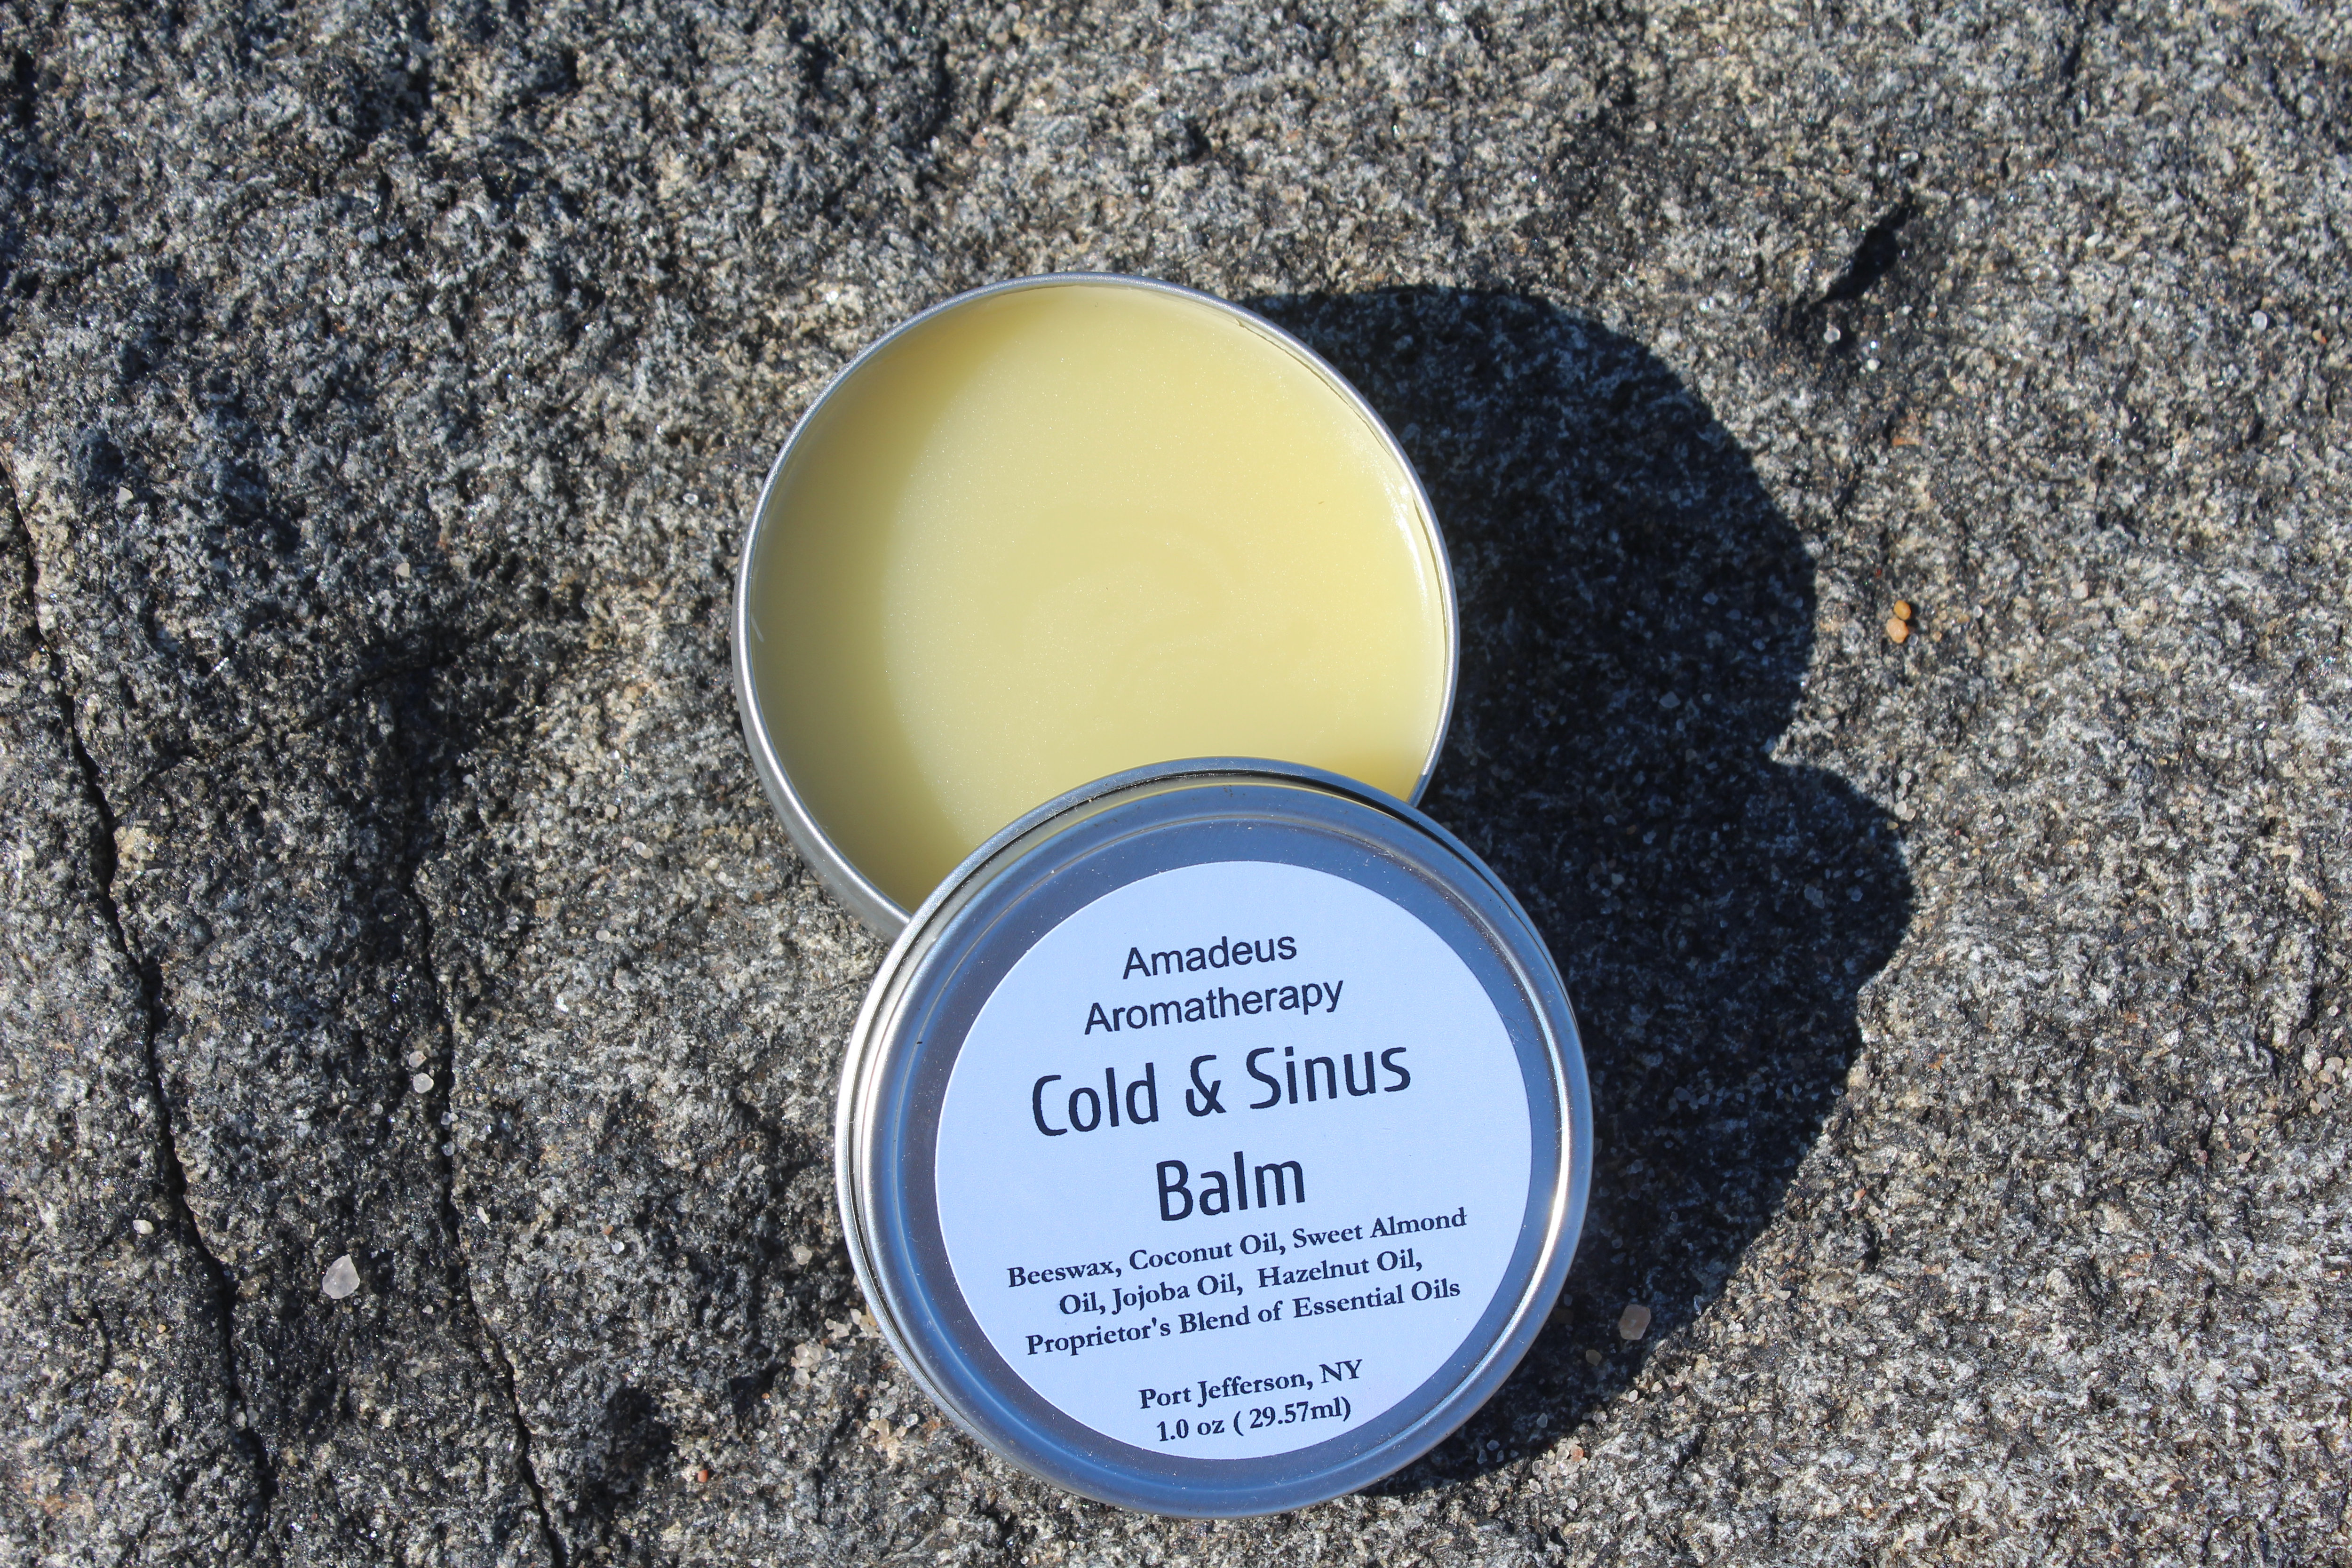 Cold and Sinus Body Balm